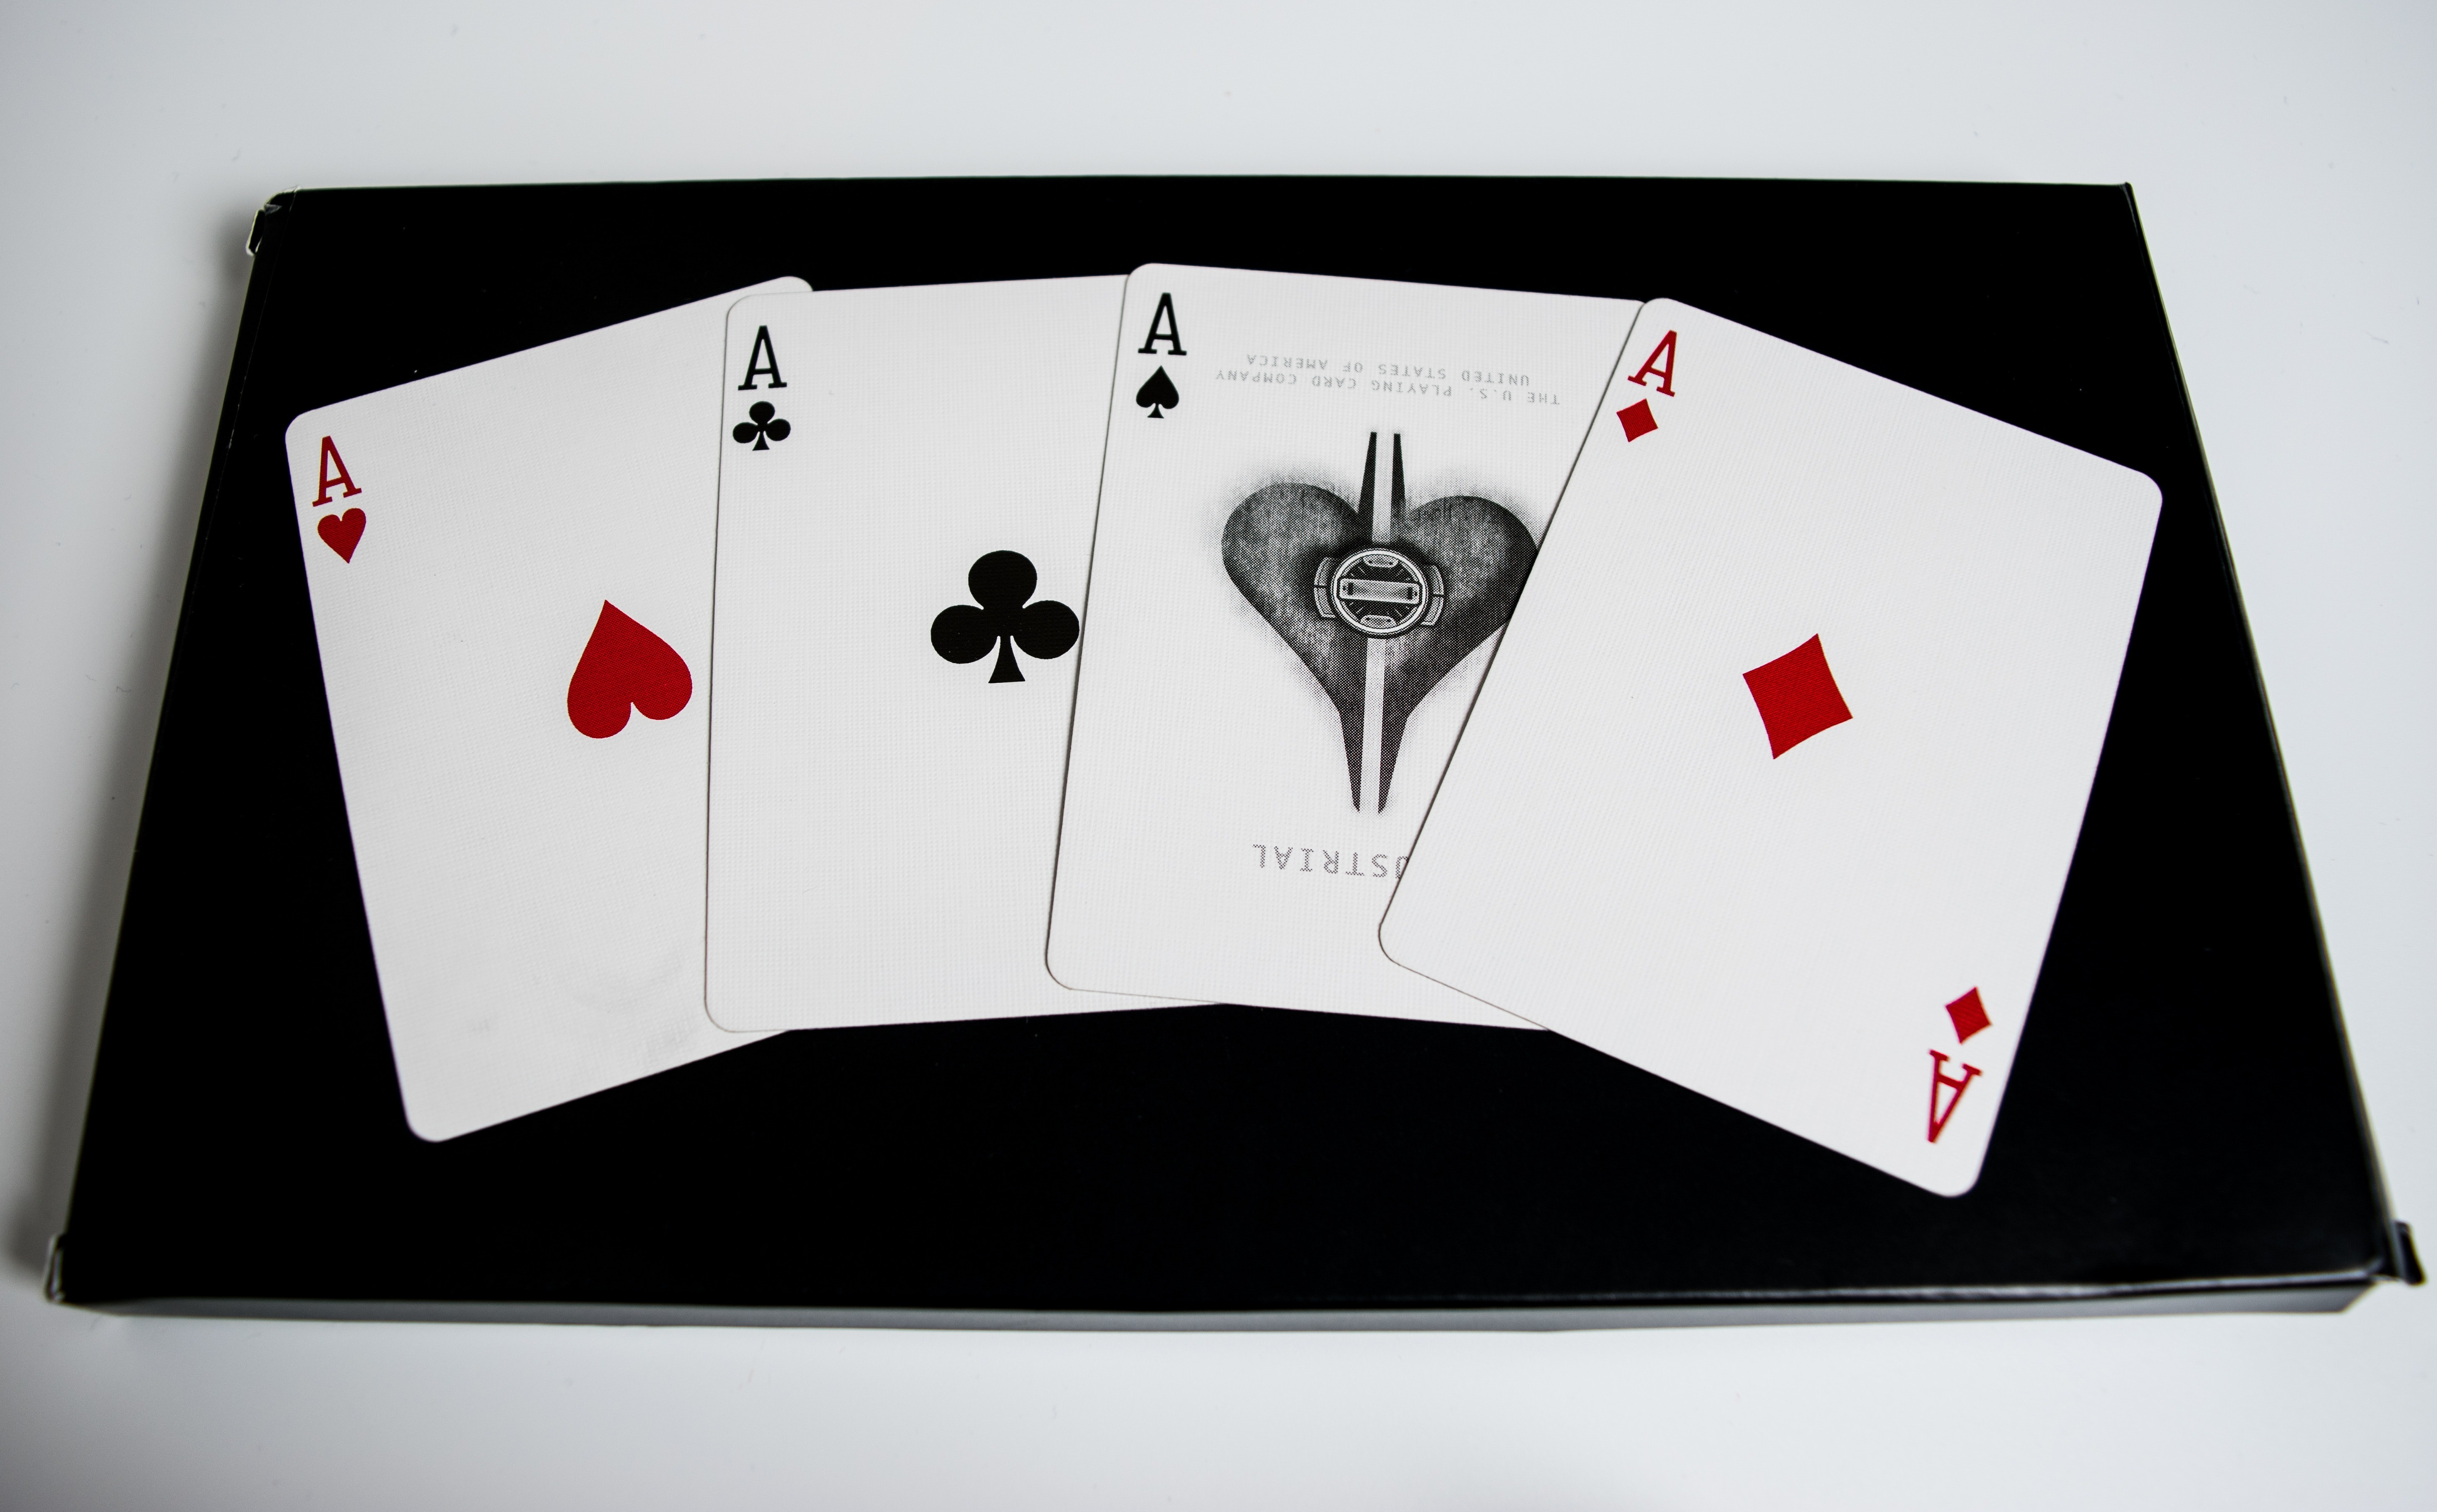 Play Blackjack in Nevada online casino sites